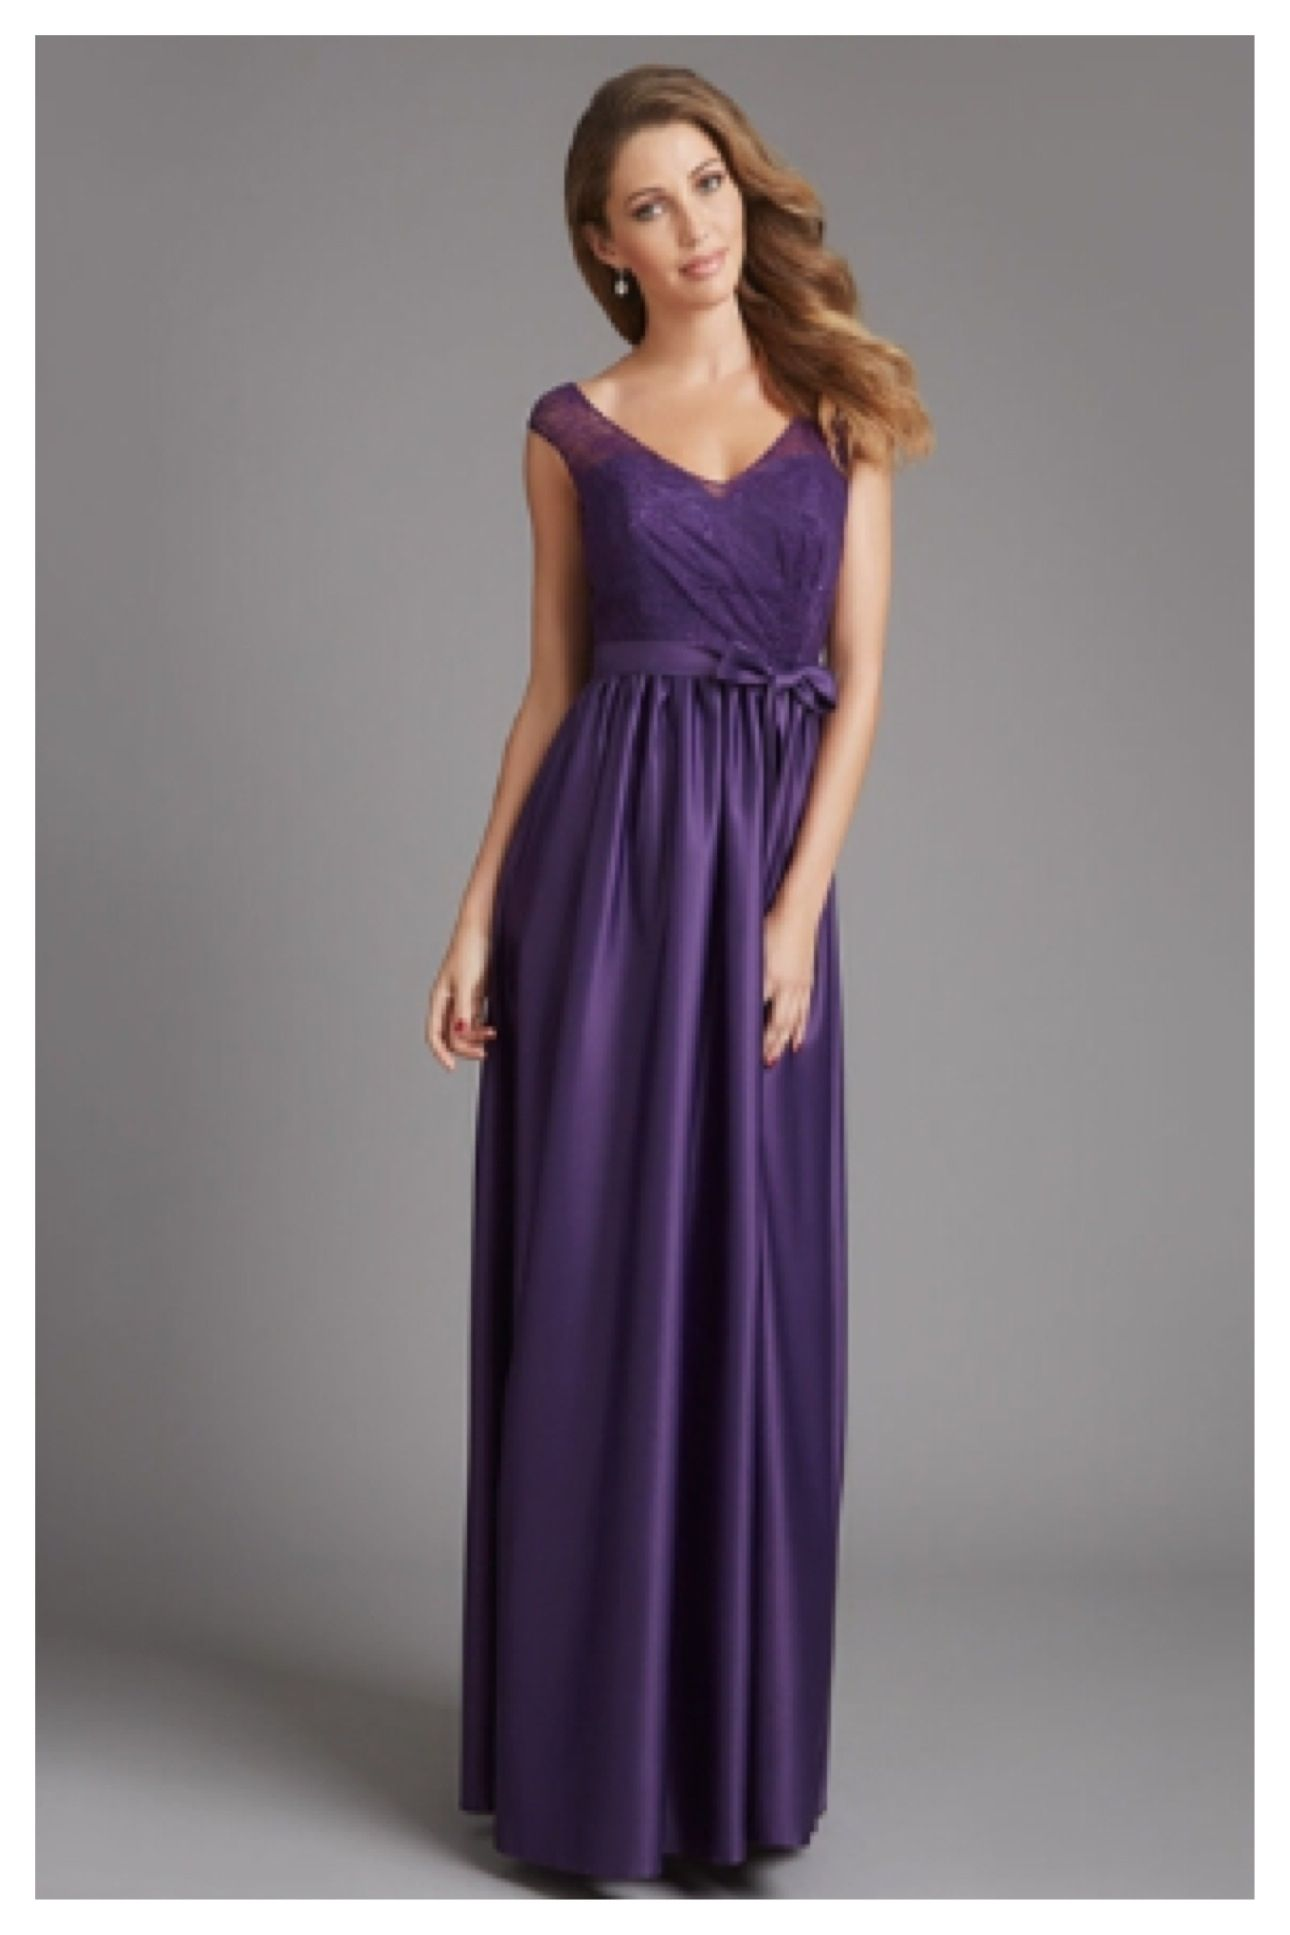 Lacesatin bridesmaids u motherus gowns pinterest satin and gowns